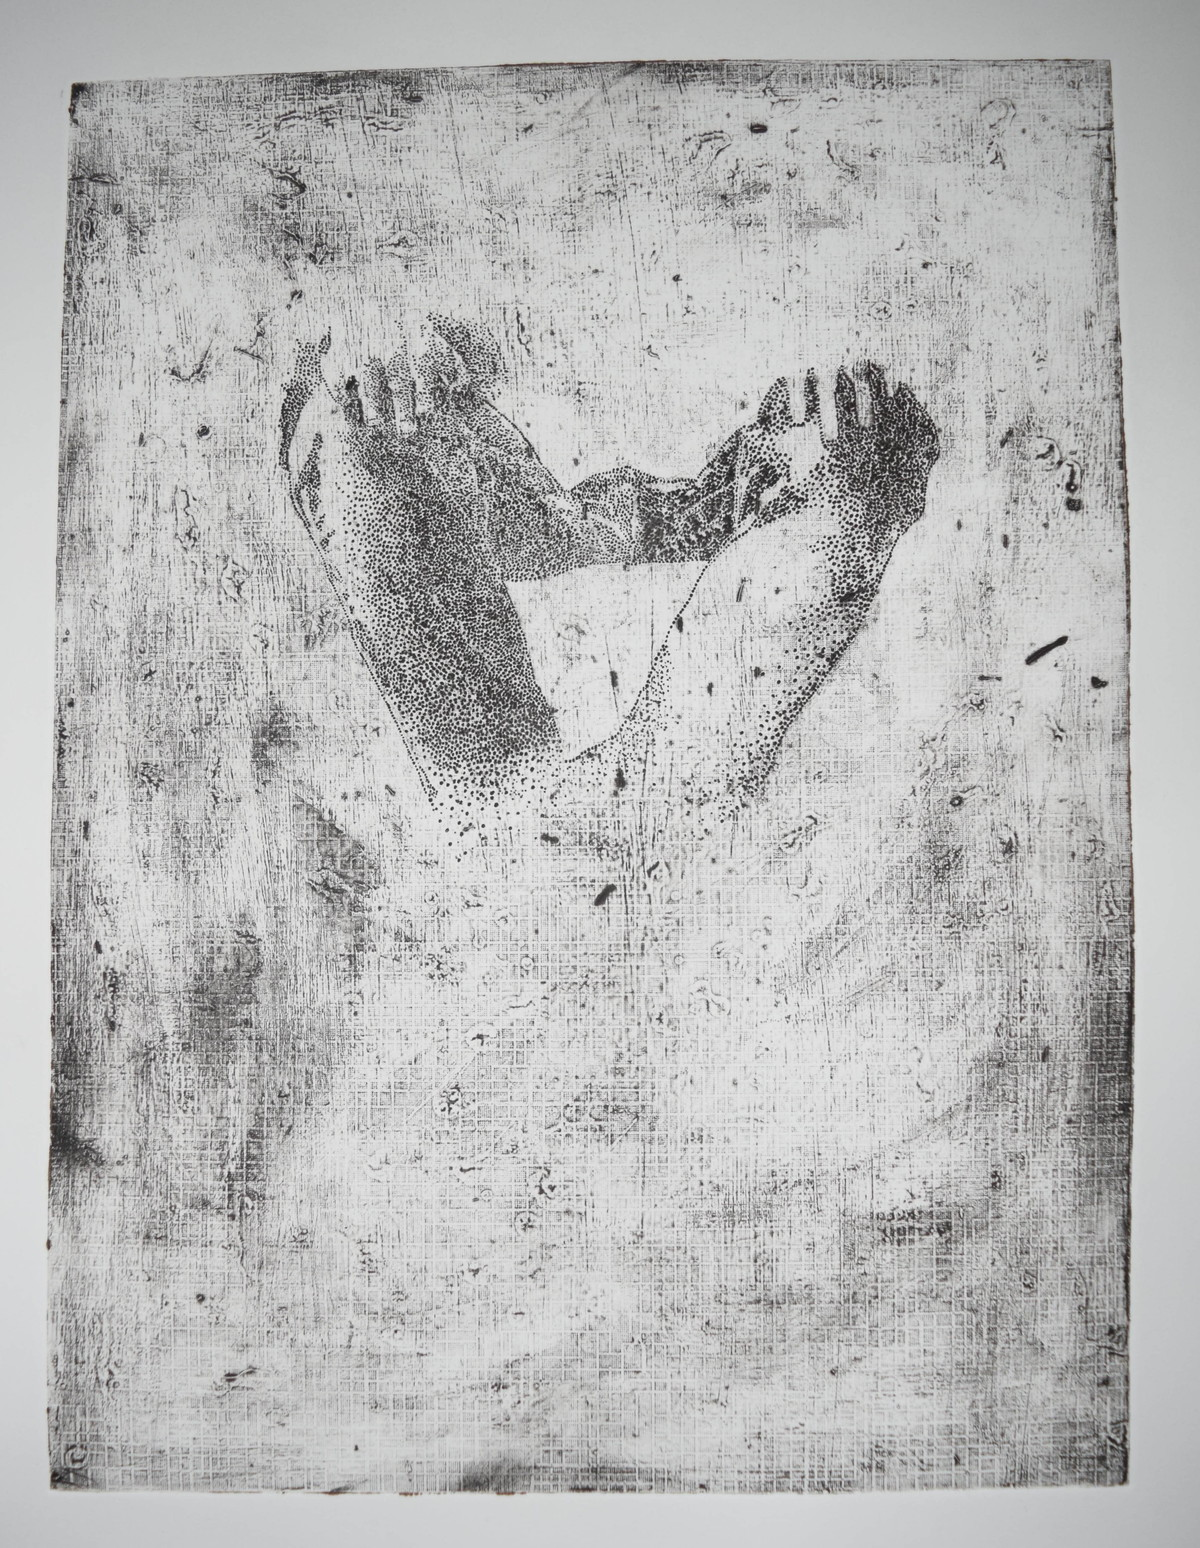 untitled by Tarun Sharma, Abstract Printmaking, Intaglio on Paper, Gray color